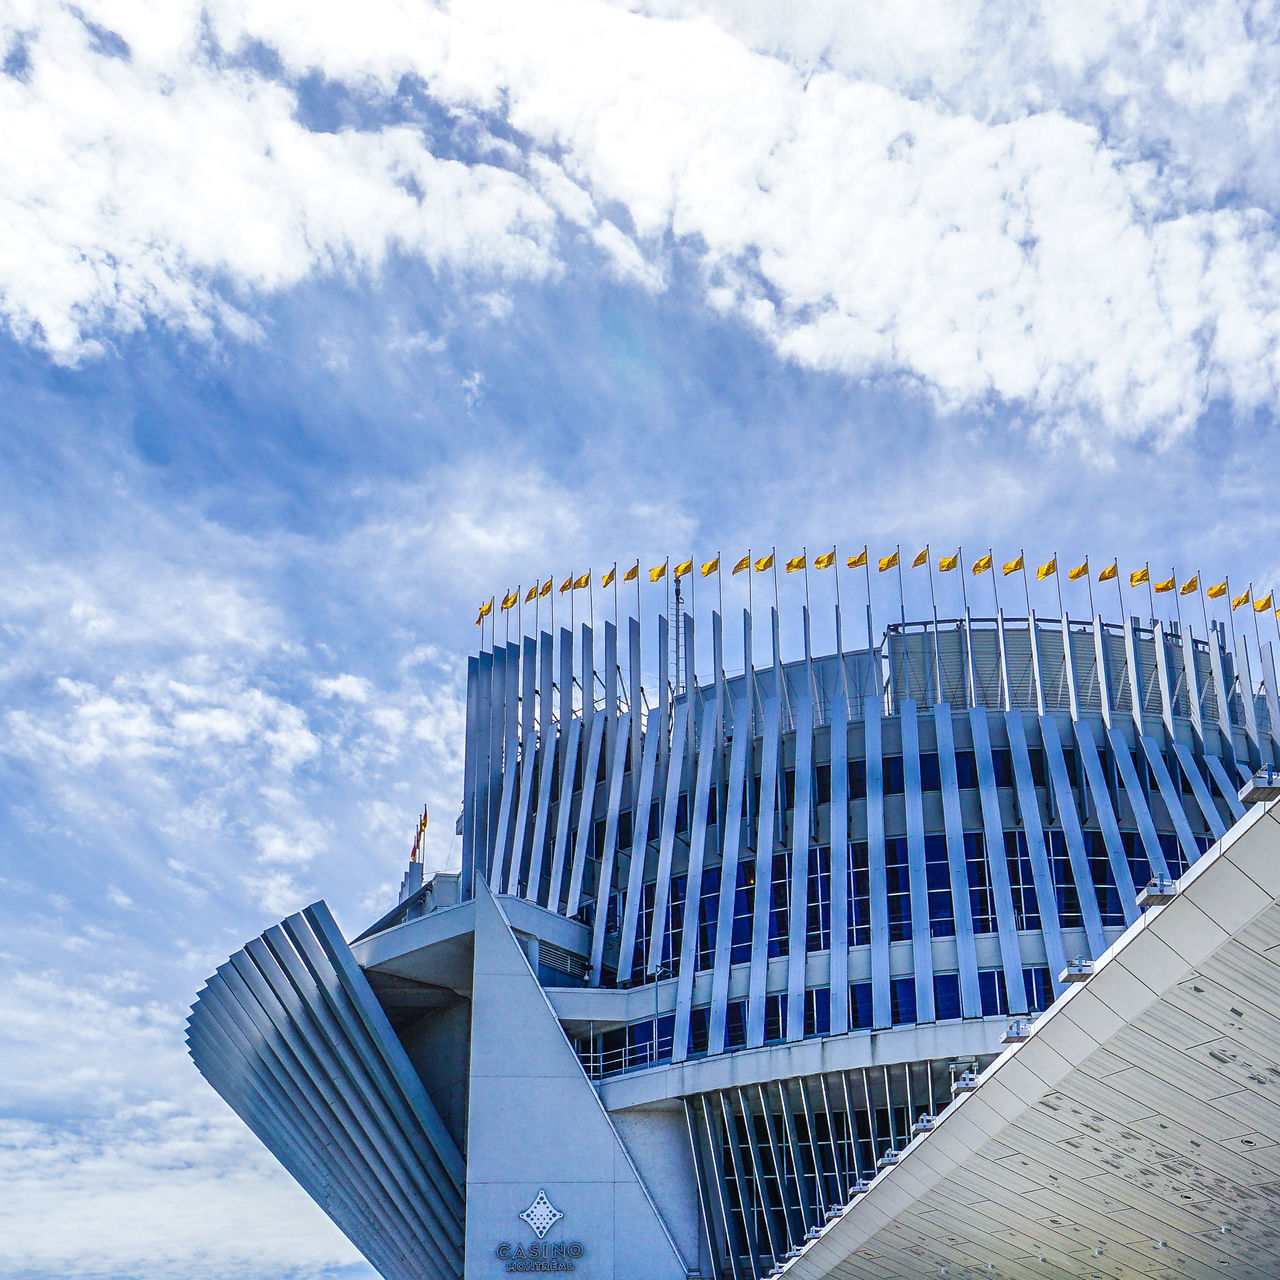 architecture, cloud - sky, sky, built structure, low angle view, building exterior, no people, day, outdoors, modern